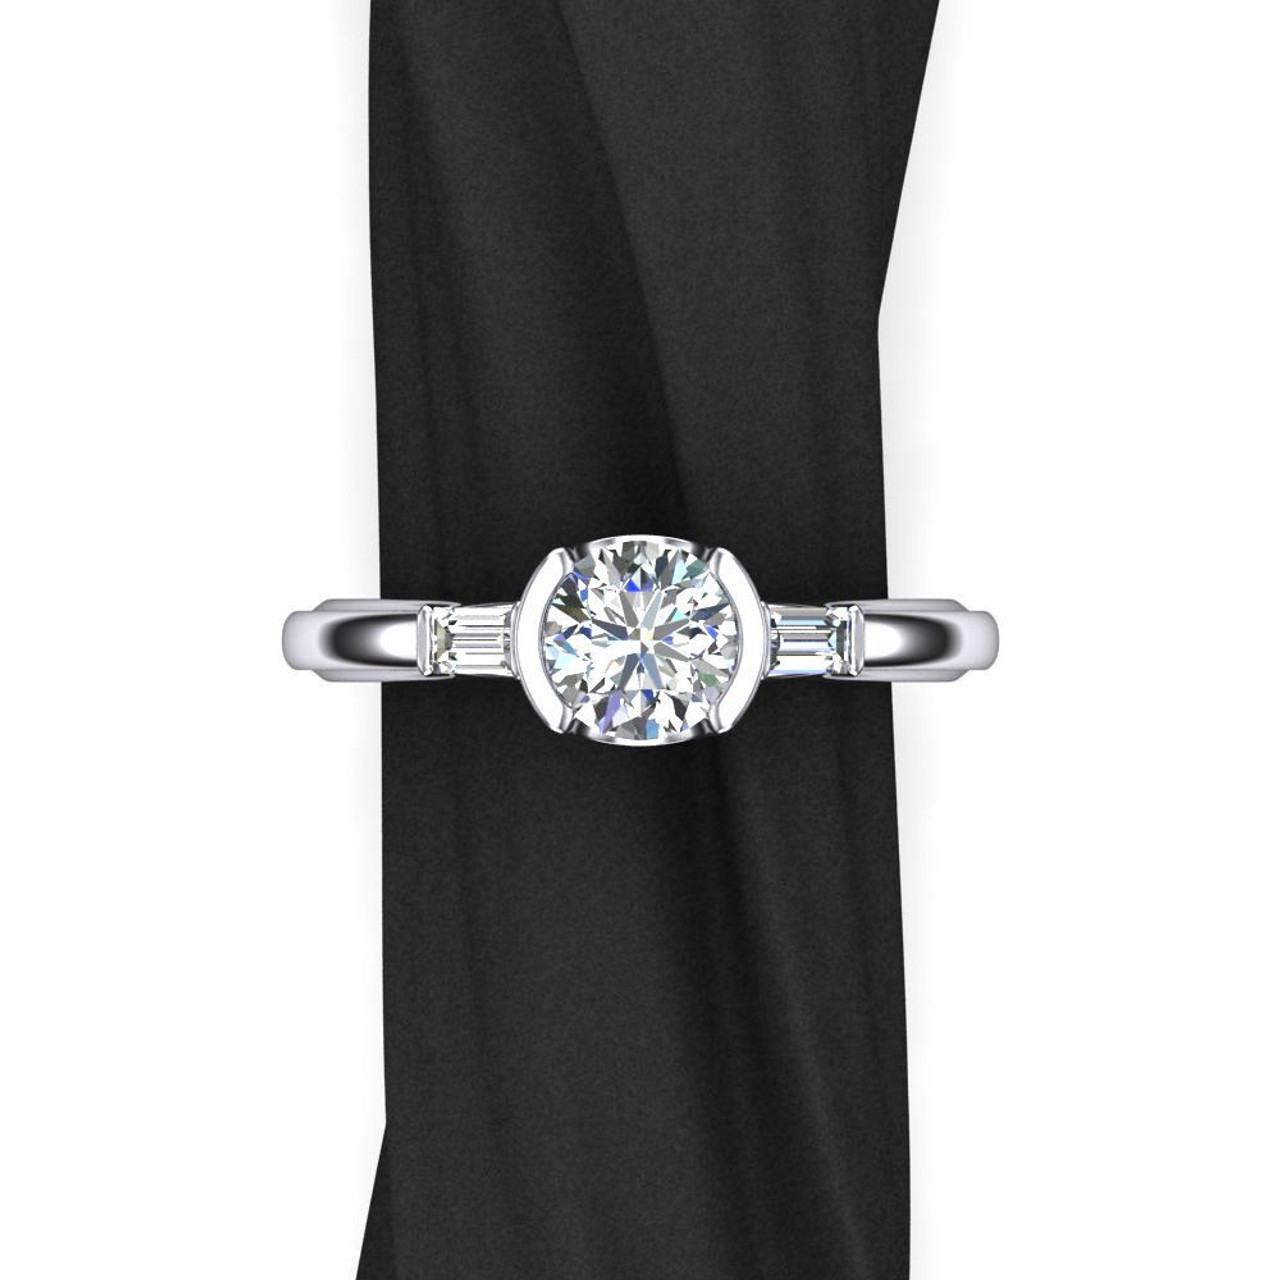 One Carat Diamond Engagement Ring 3 Stone Design With Baguette Side Diamonds And Half Bezel Setting